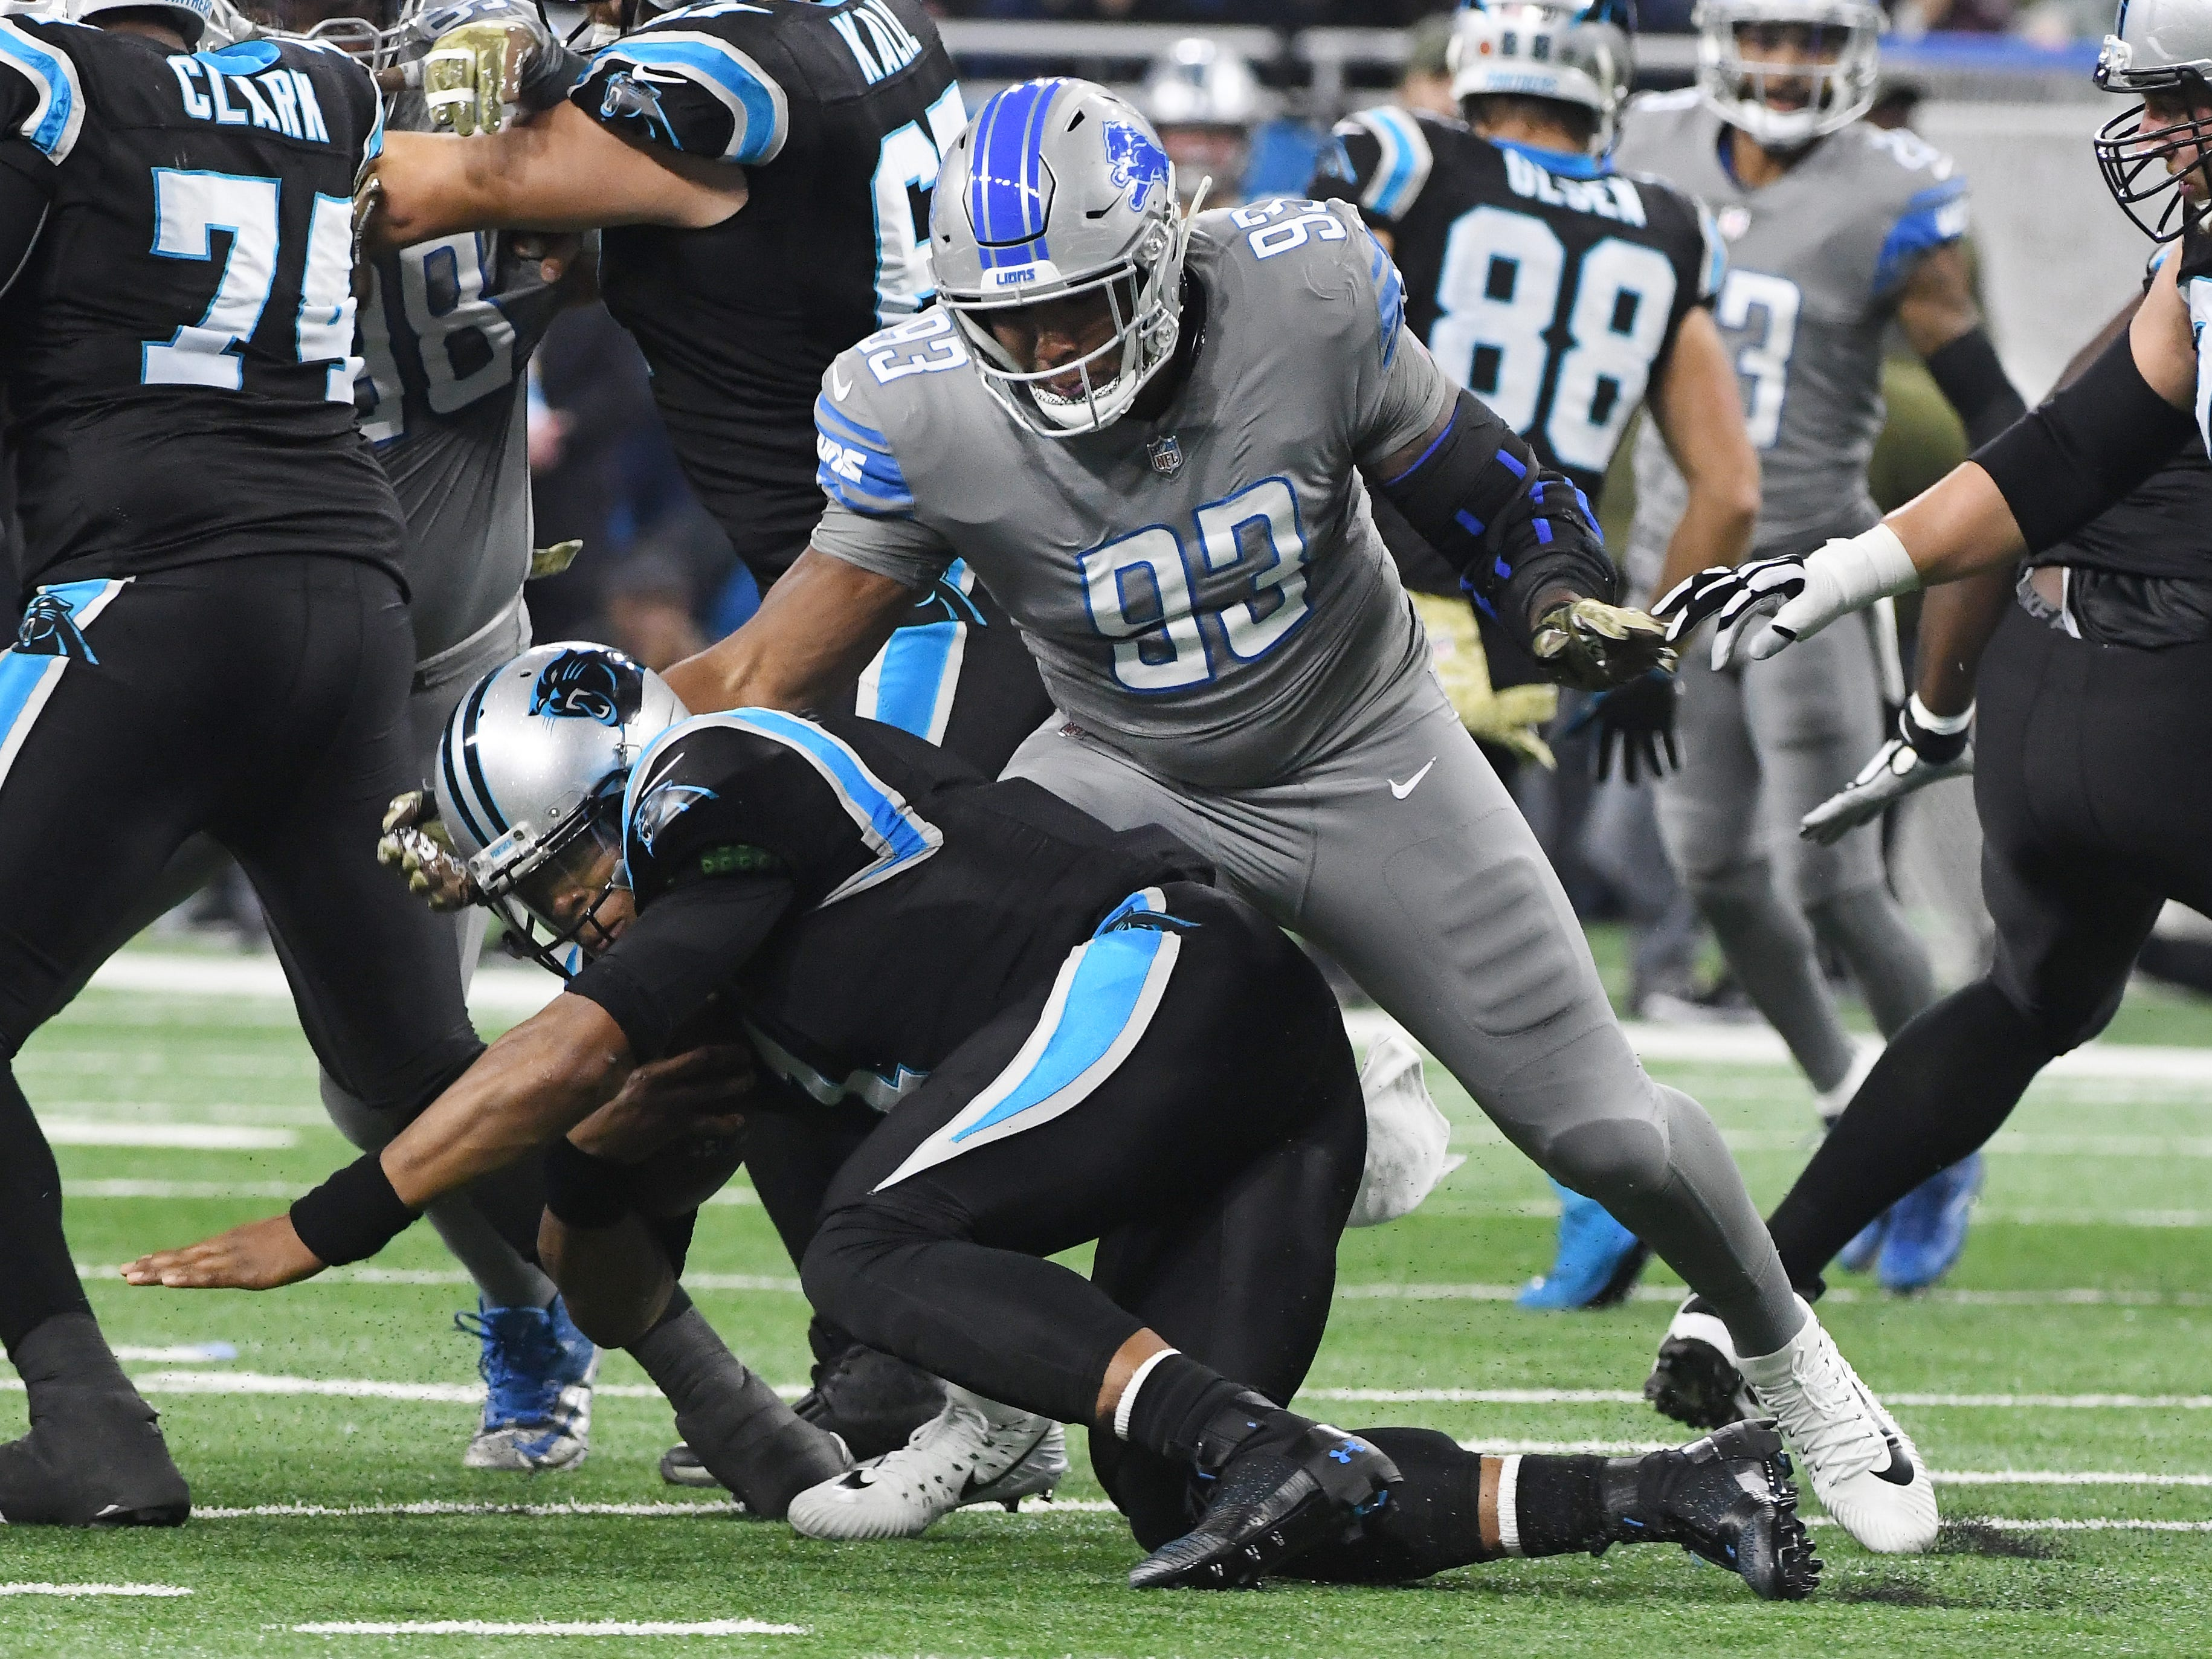 Lions' Da' Shawn Hand sacks Panthers quarterback Cam Newton in the first quarter.